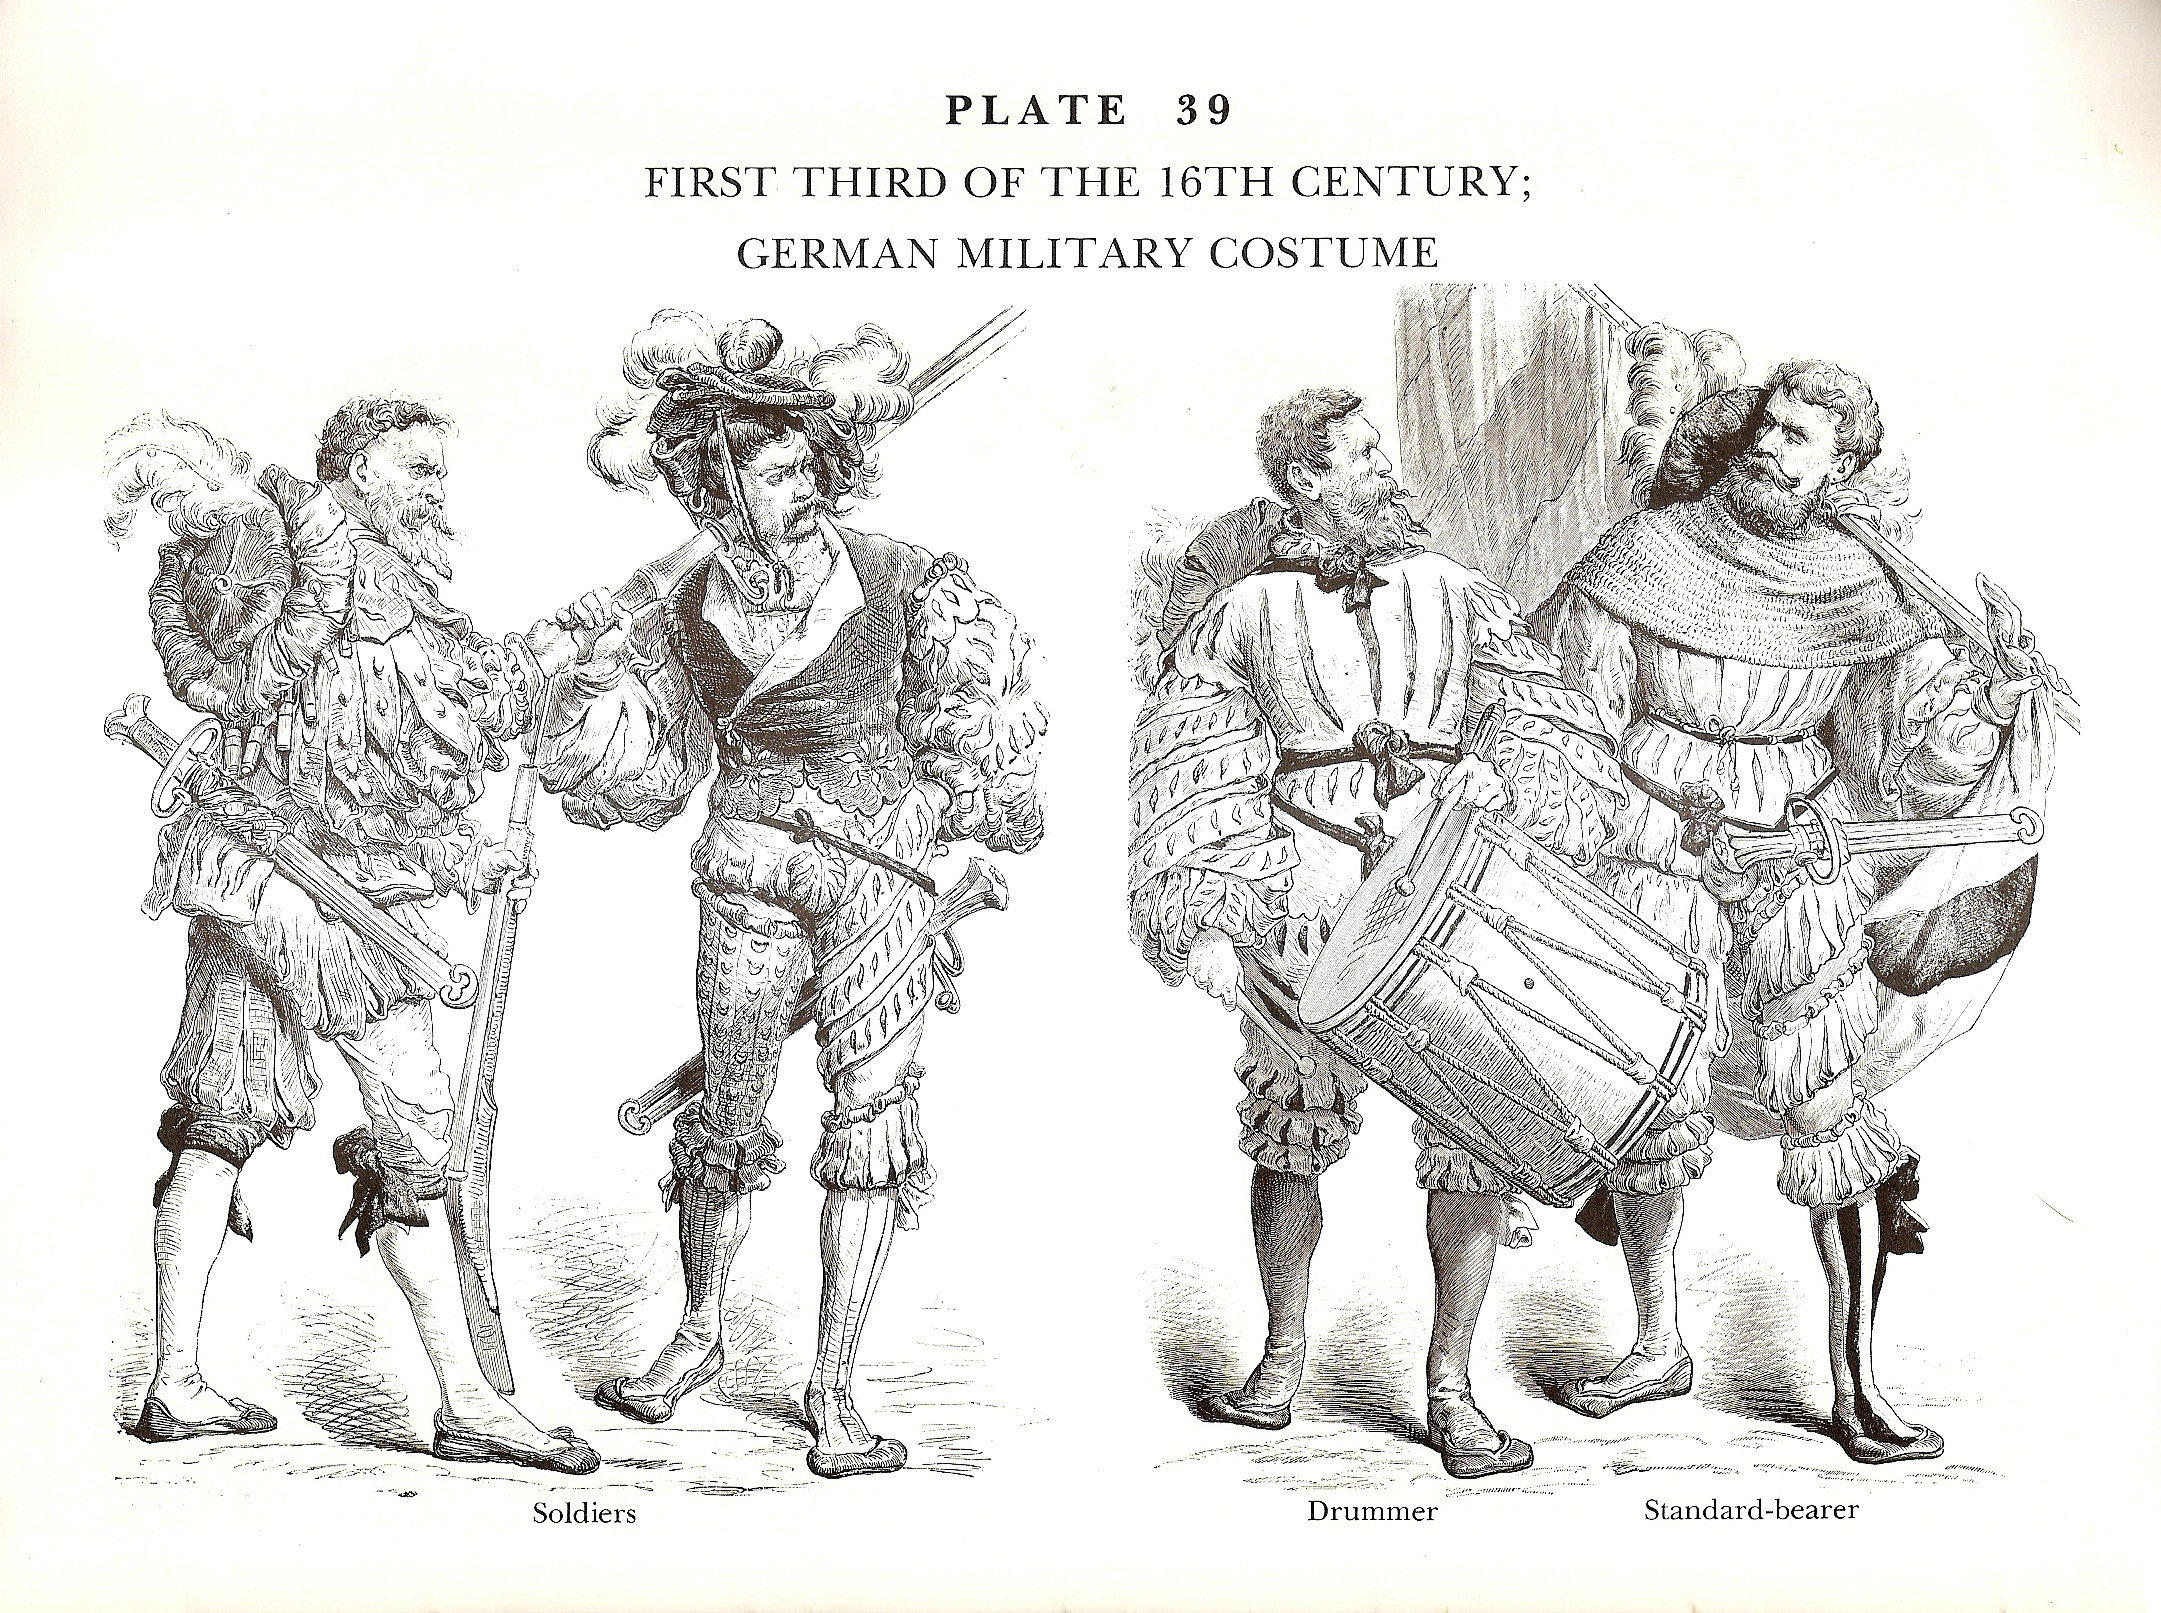 First Third of the 16th Century German Military Costume